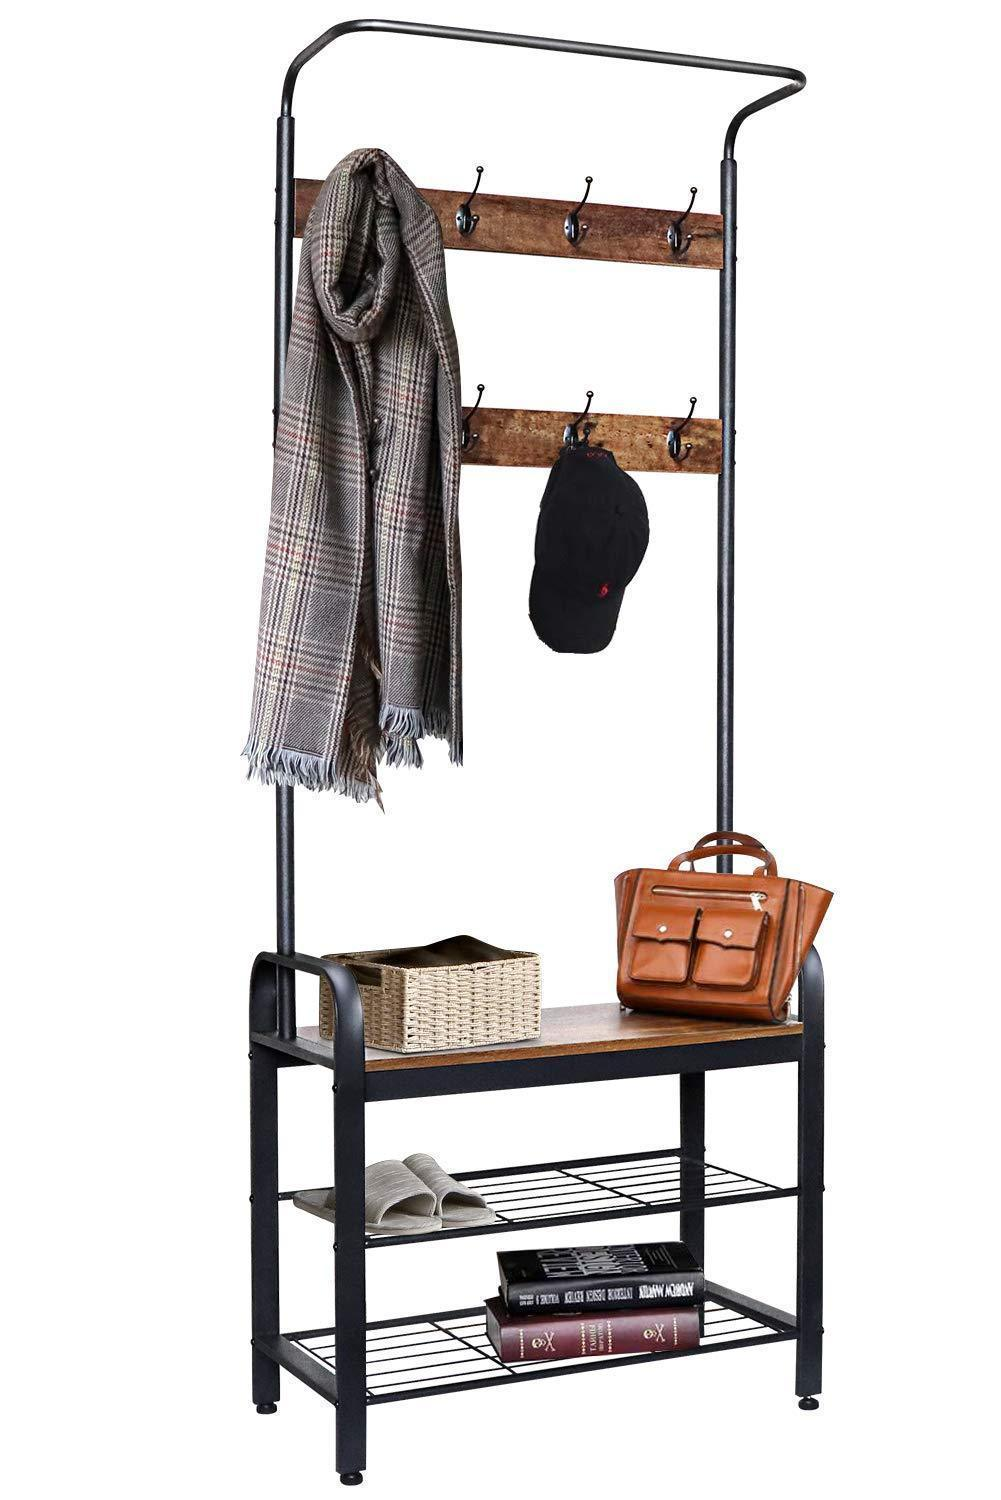 ZNCMRR Entryway Hall Tree with Shoe Bench, Rustic Coat Rack Industrial Entryway Furniture Organizer with 8 Double Hooks and Storage Shelf for Hallway, Bedroom, Living Room, Easy Assembly